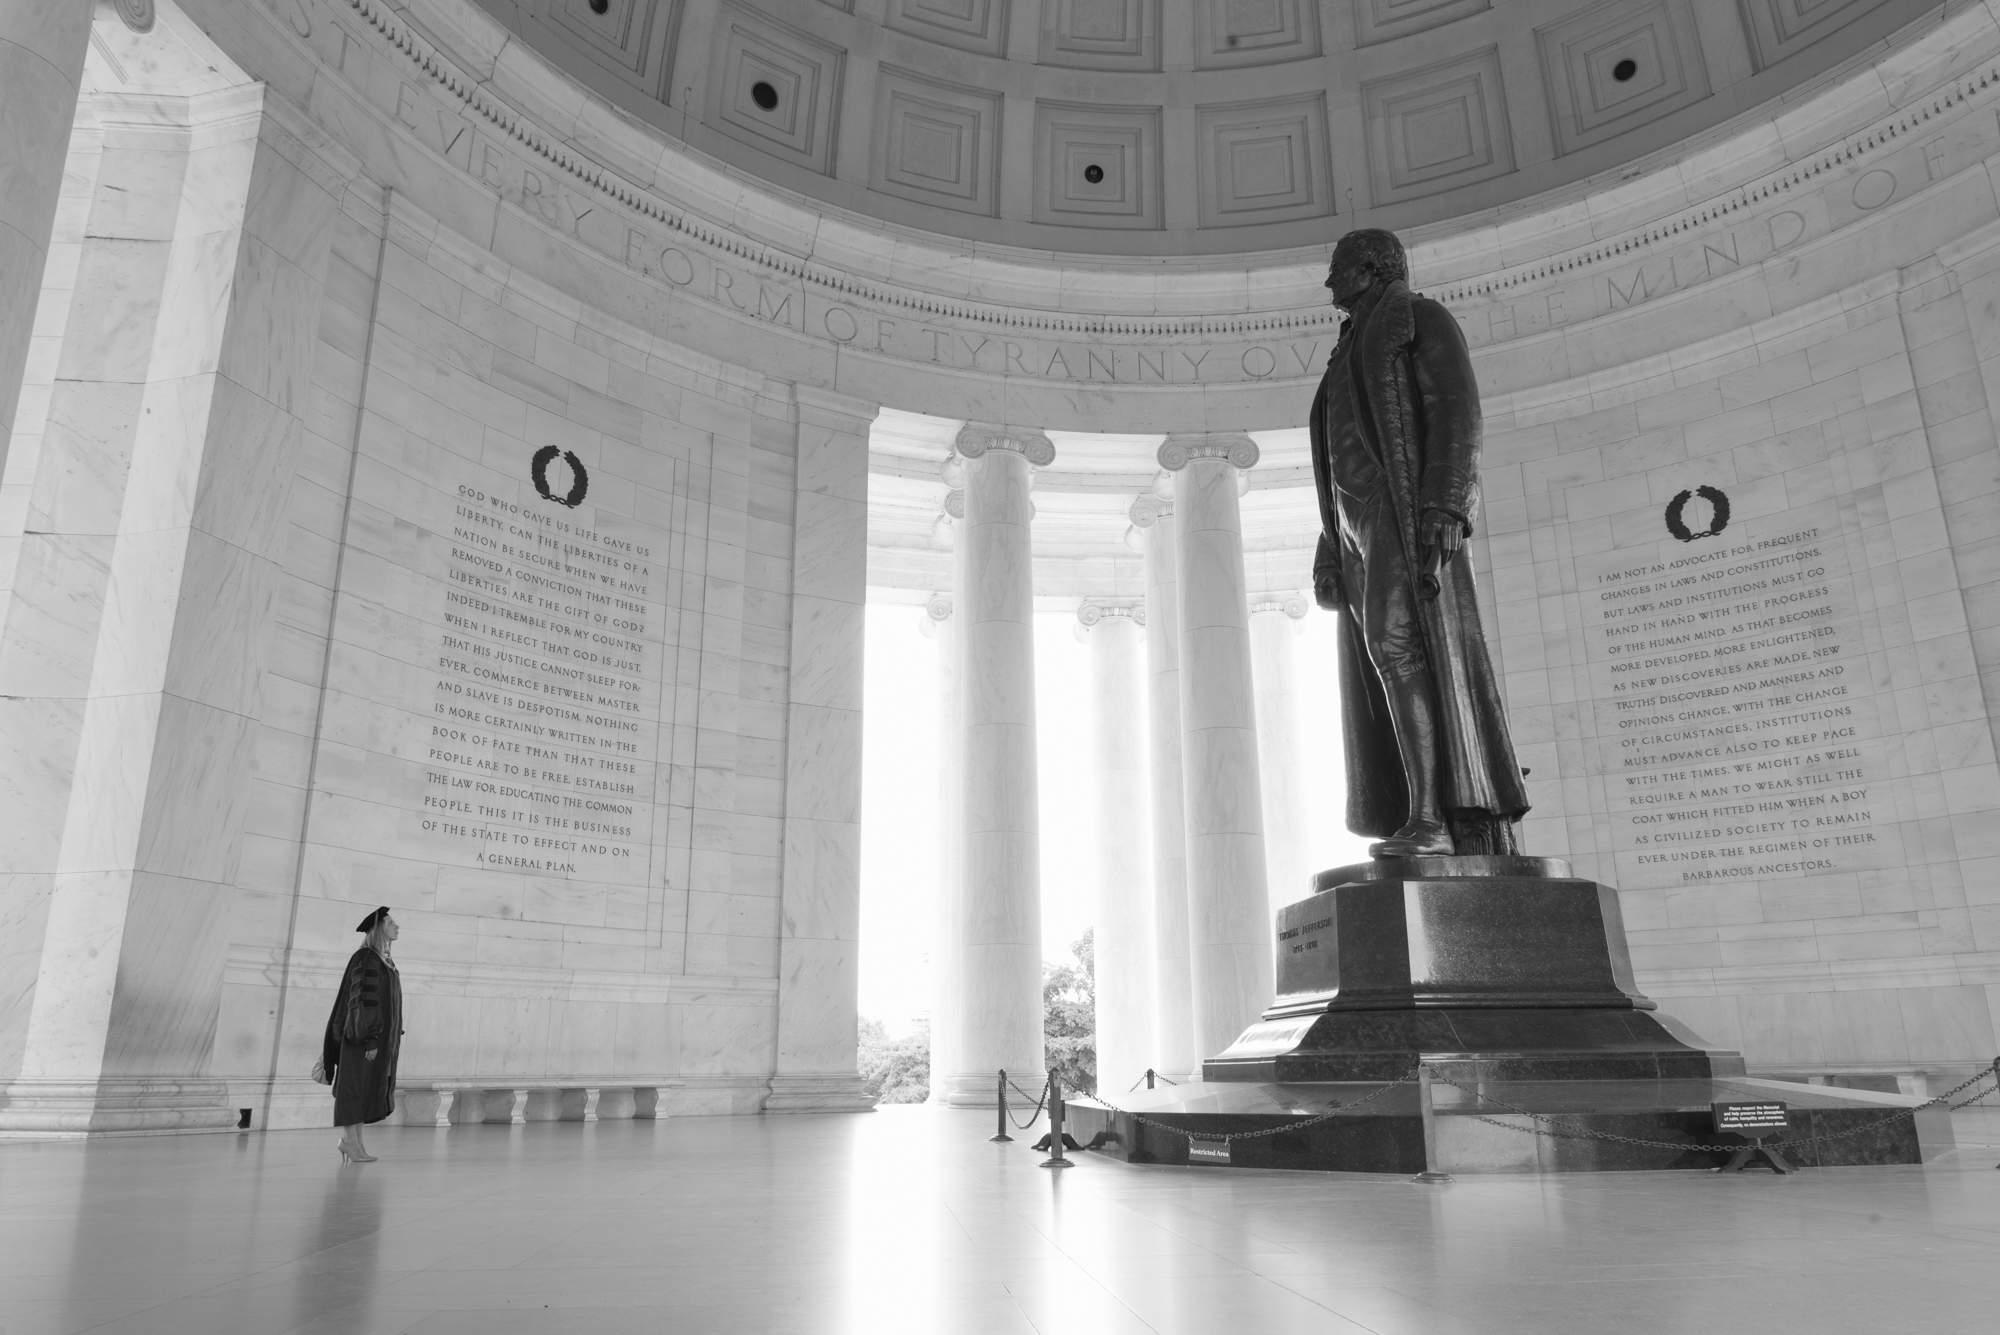 Larger than life at the Thomas Jefferson Memorial